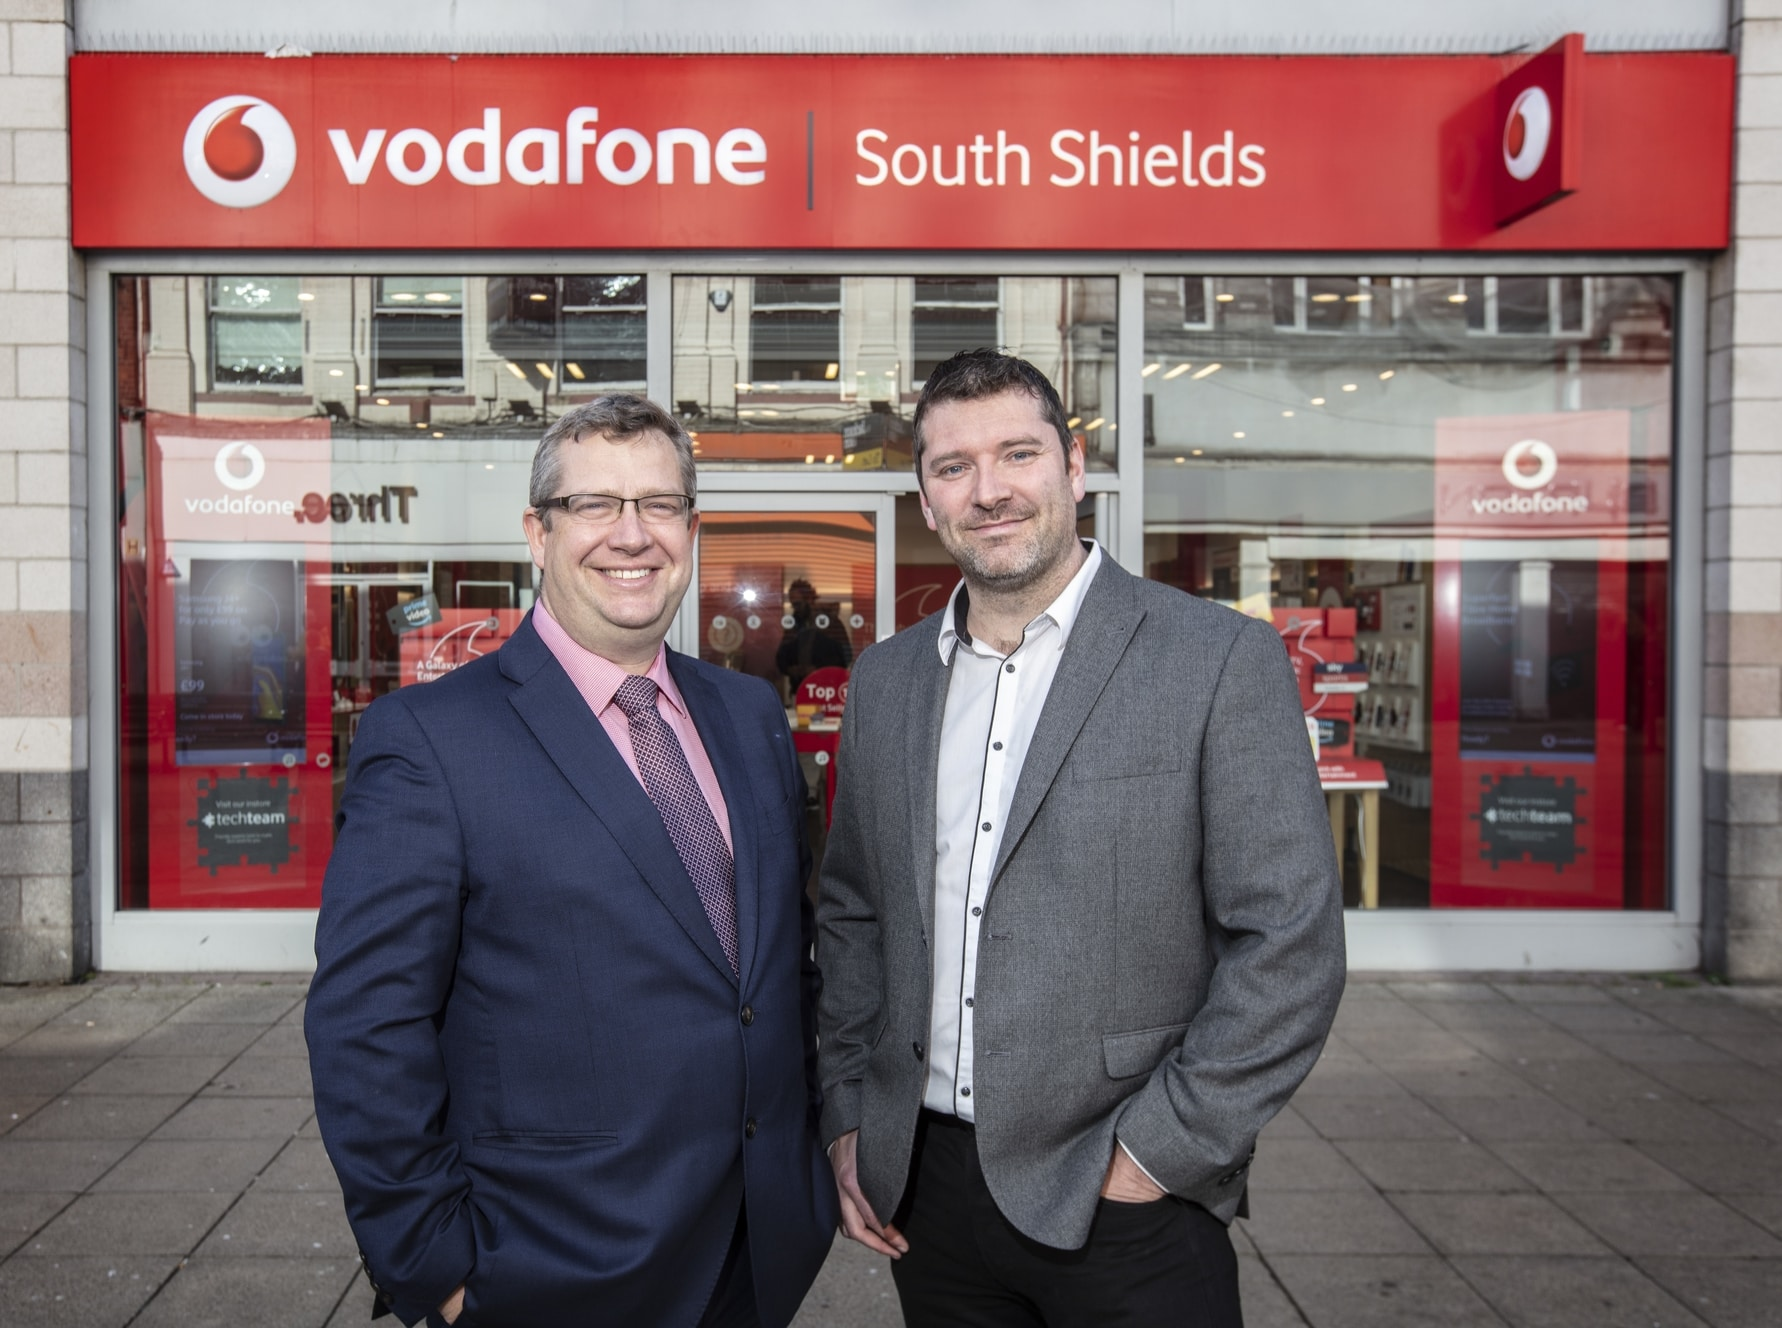 PG Legal advise Vodafone franchisee